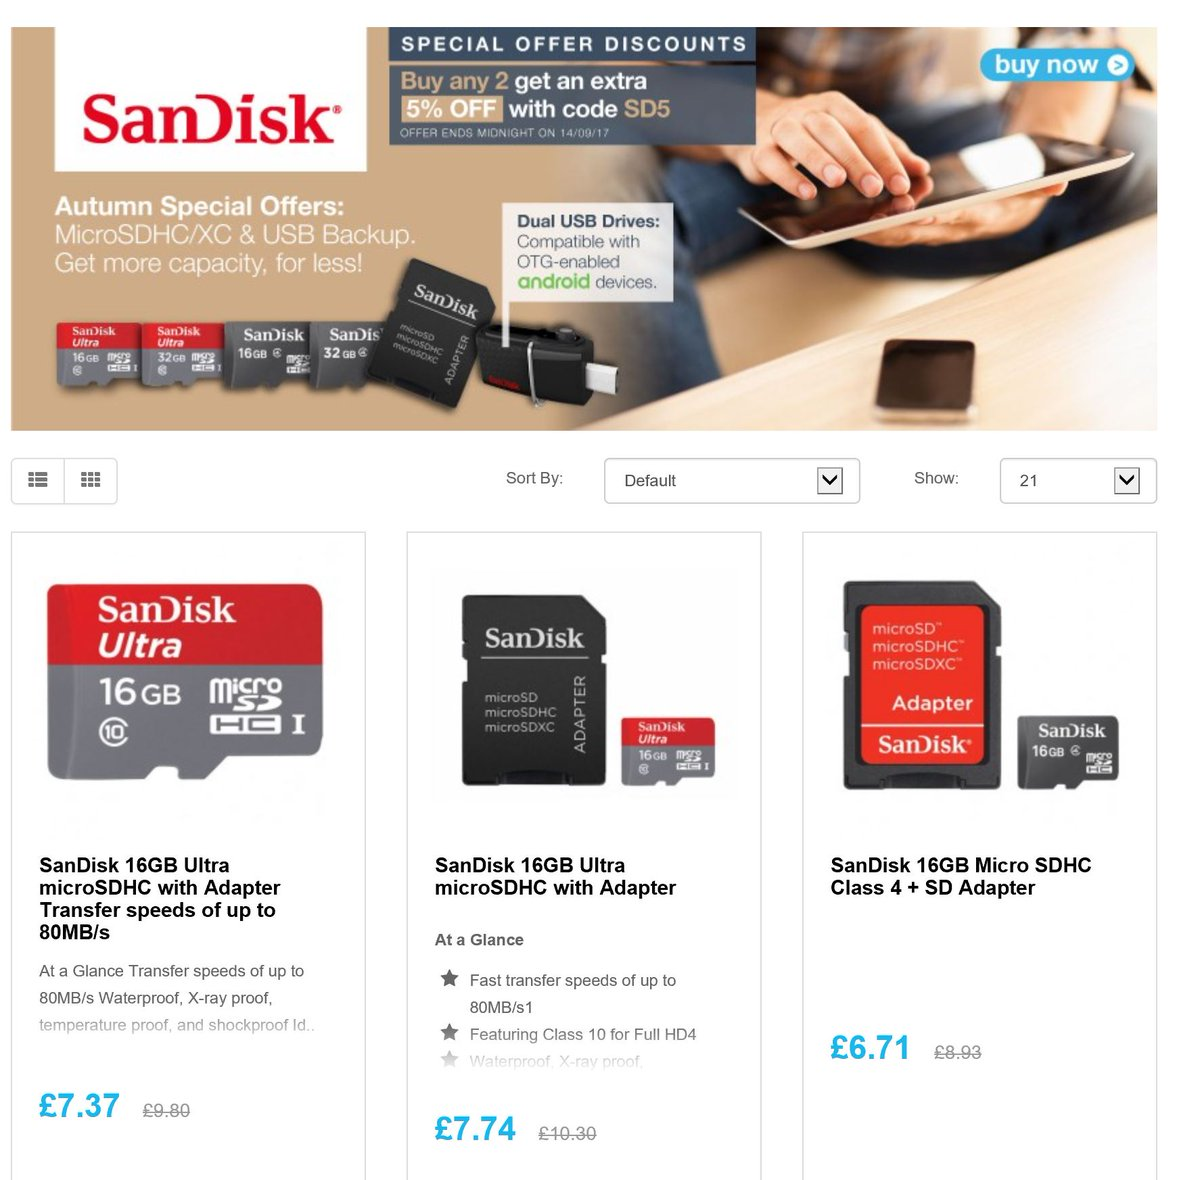 Save on @SanDisk micro SD/xc cards  http:// ow.ly/j95j30eZuxy  &nbsp;    #RT #Follow #Win  share  #MultiBuy Extra 5% when u buy 2 from collection <br>http://pic.twitter.com/MoWxNSQQzM